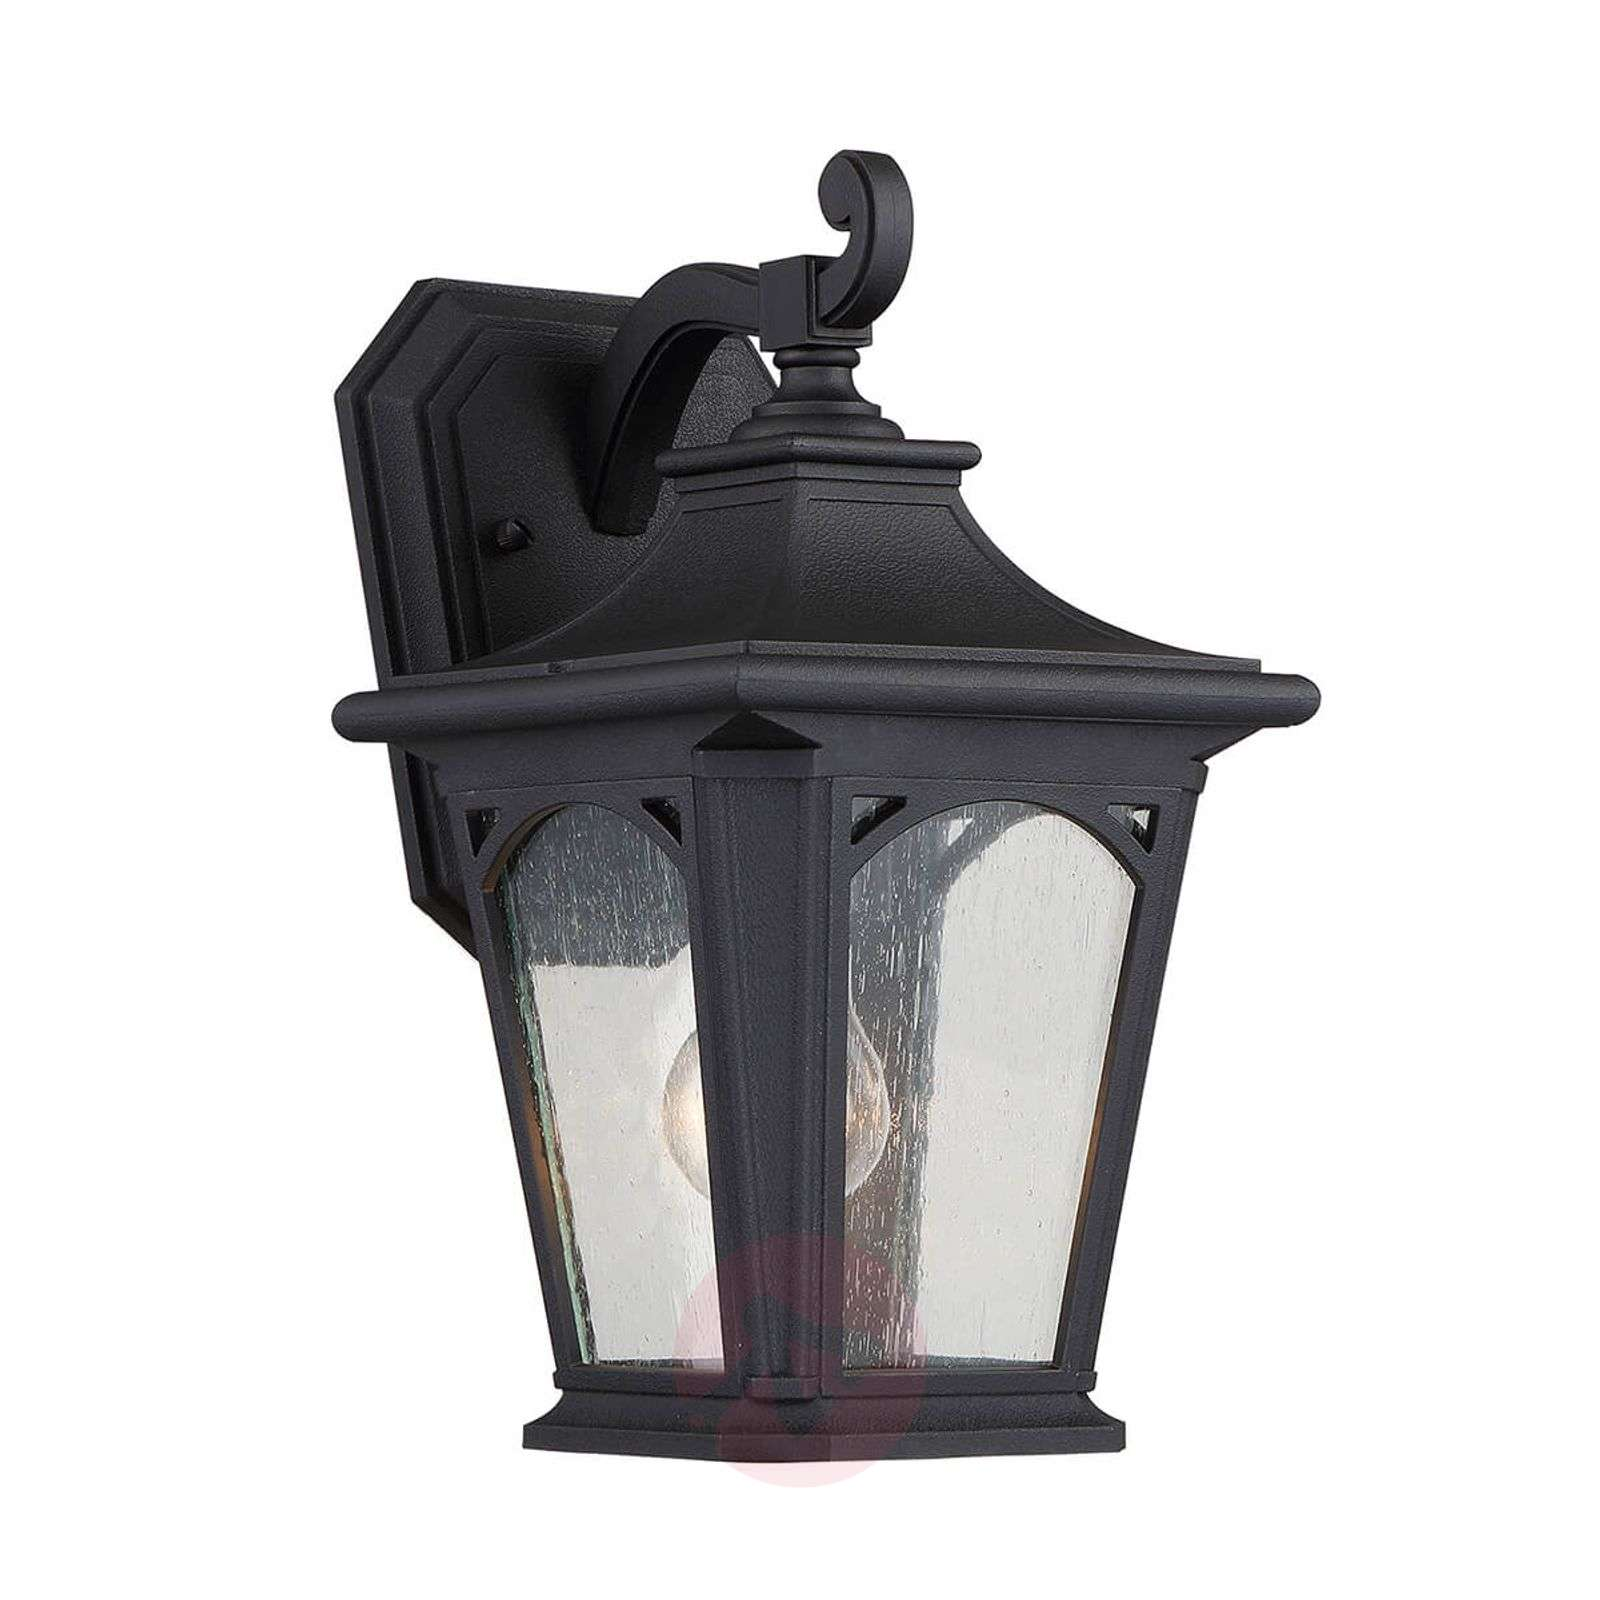 Black Bedford small outdoor wall lamp-3048830-01